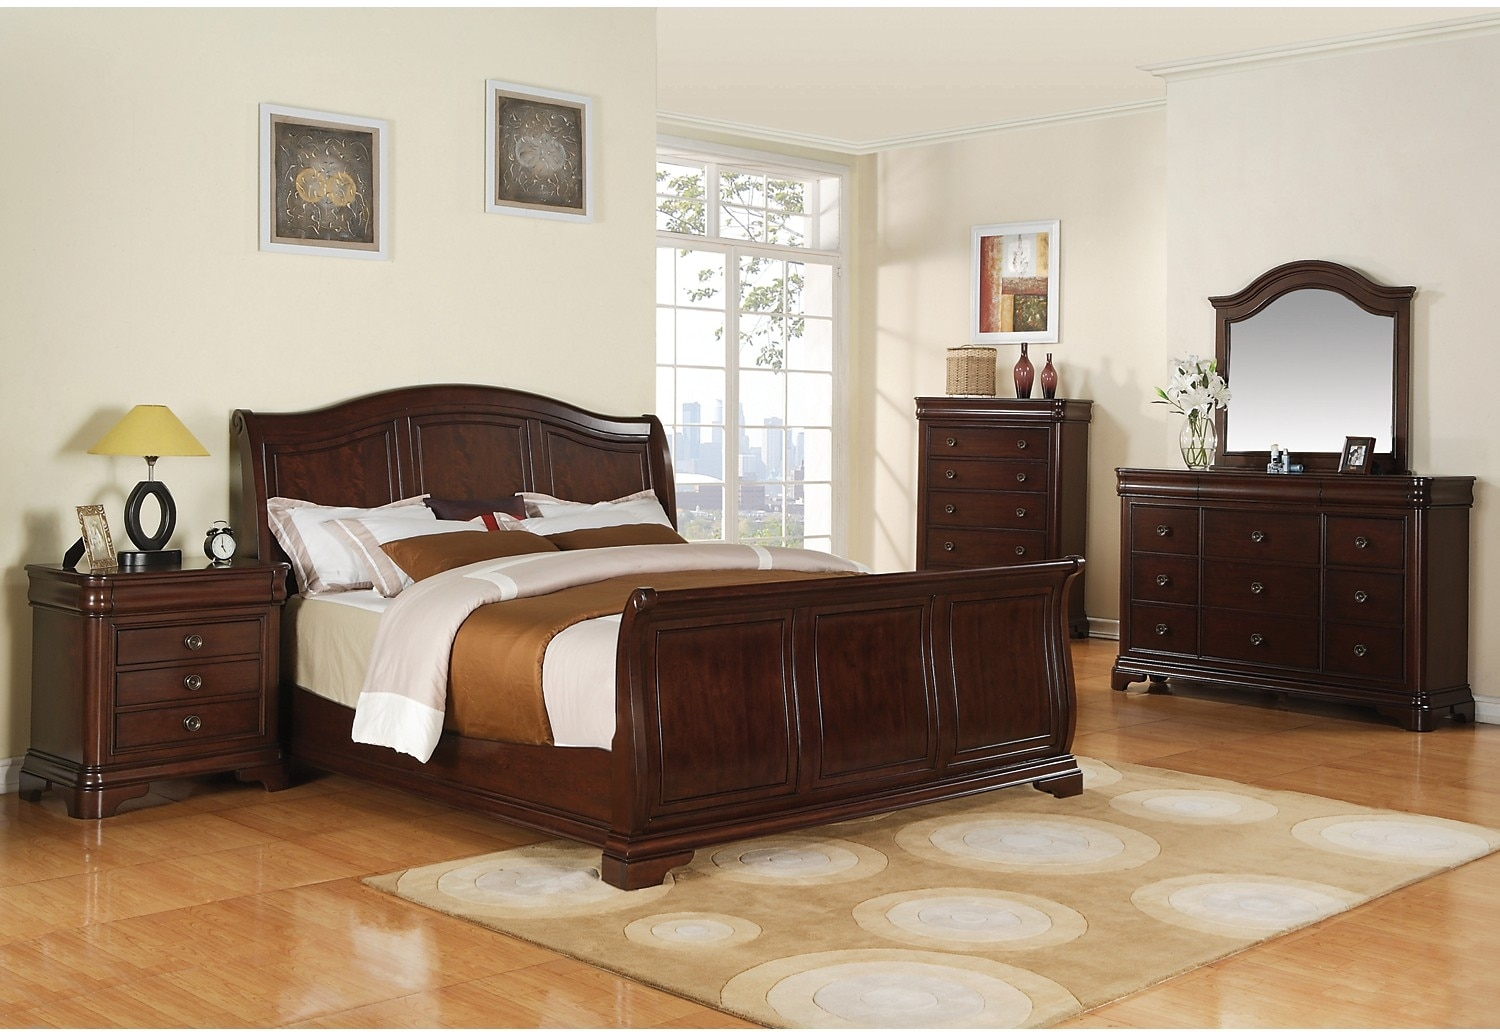 Bedroom Furniture - Cameron 8-Piece King Bedroom Package - Merlot